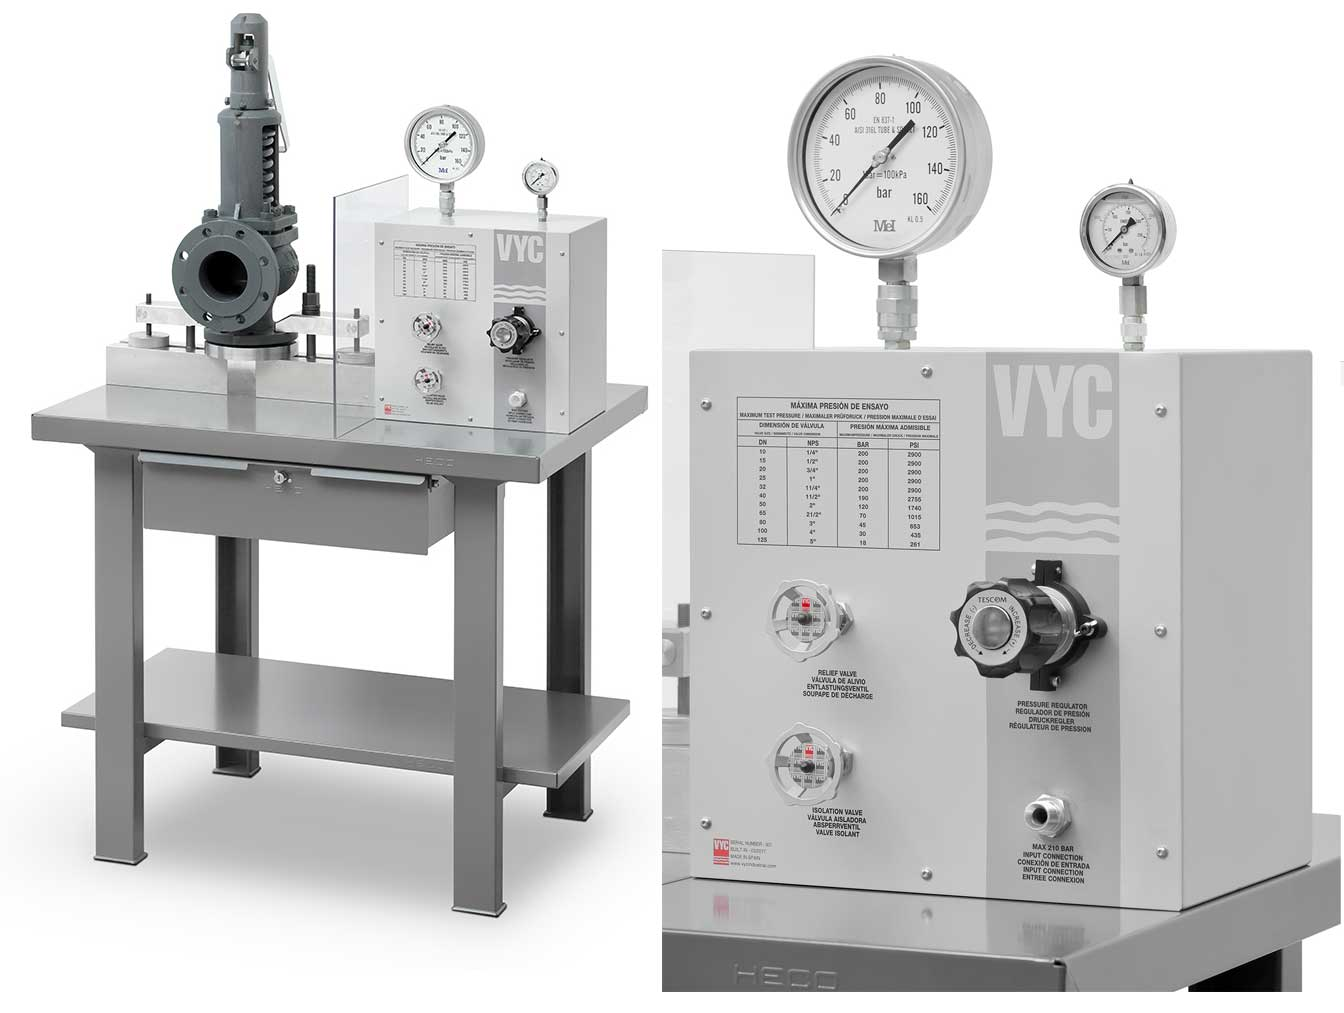 Test bench for safety valves